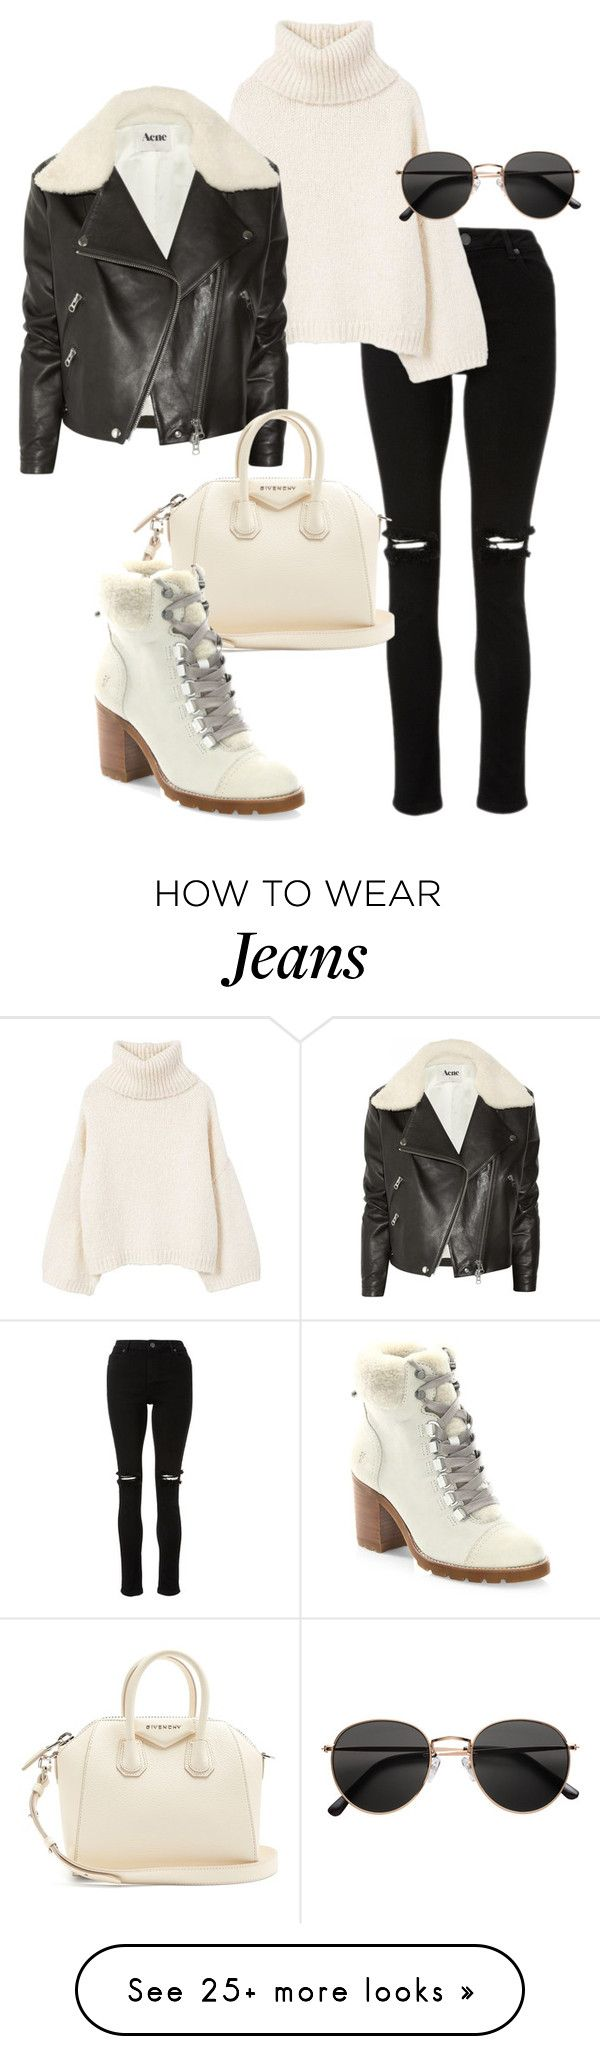 """Untitled #23096"" by florencia95 on Polyvore featuring MANGO, Acne Studios, Givenchy, Frye and H&M"